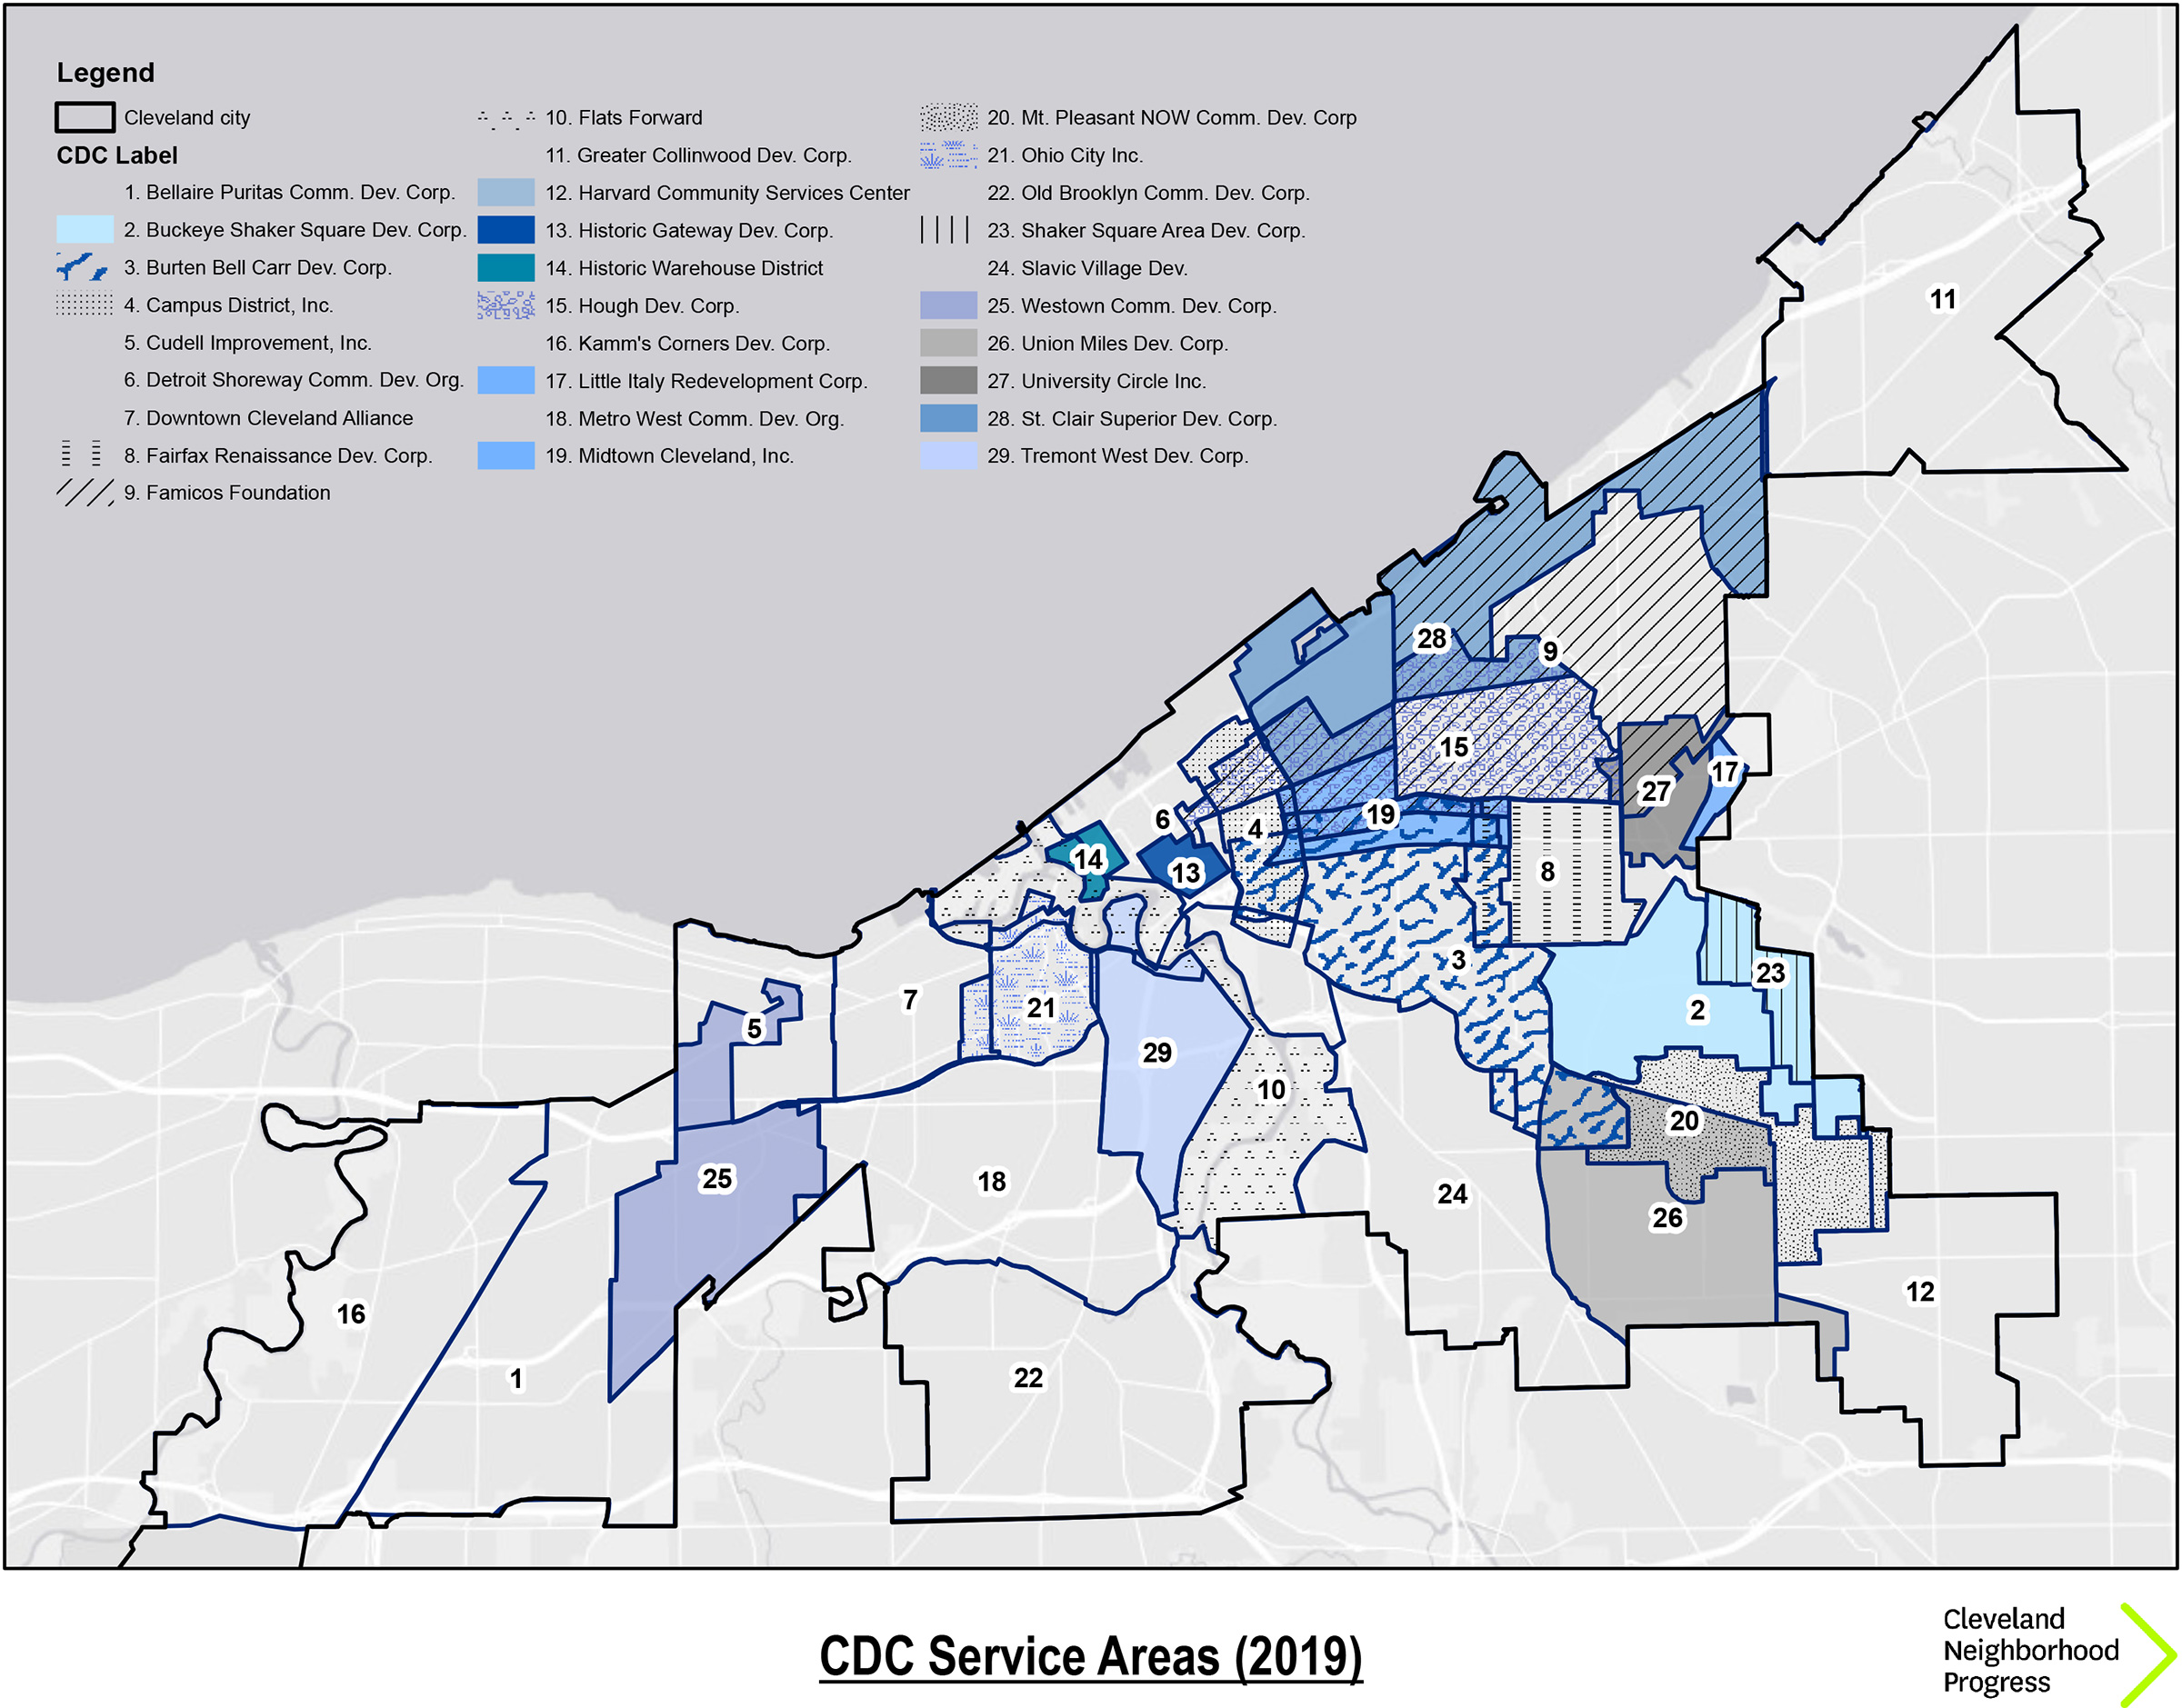 cle-cdcs-map - Cleveland Neighborhood Progress on geneva map, cleveland cavaliers, san diego map, state map, ohio map, detroit map, cleveland browns, blairsville ga map, cincinnati map, cuyahoga county map, great lakes map, case western reserve university, florida map, cleveland indians, pittsburgh map, galveston map, atlanta map, kansas city map, clevland on a map, miami map, st. louis map, lake erie, rock and roll hall of fame, pennsylvania map, tampa map, massachusetts map,